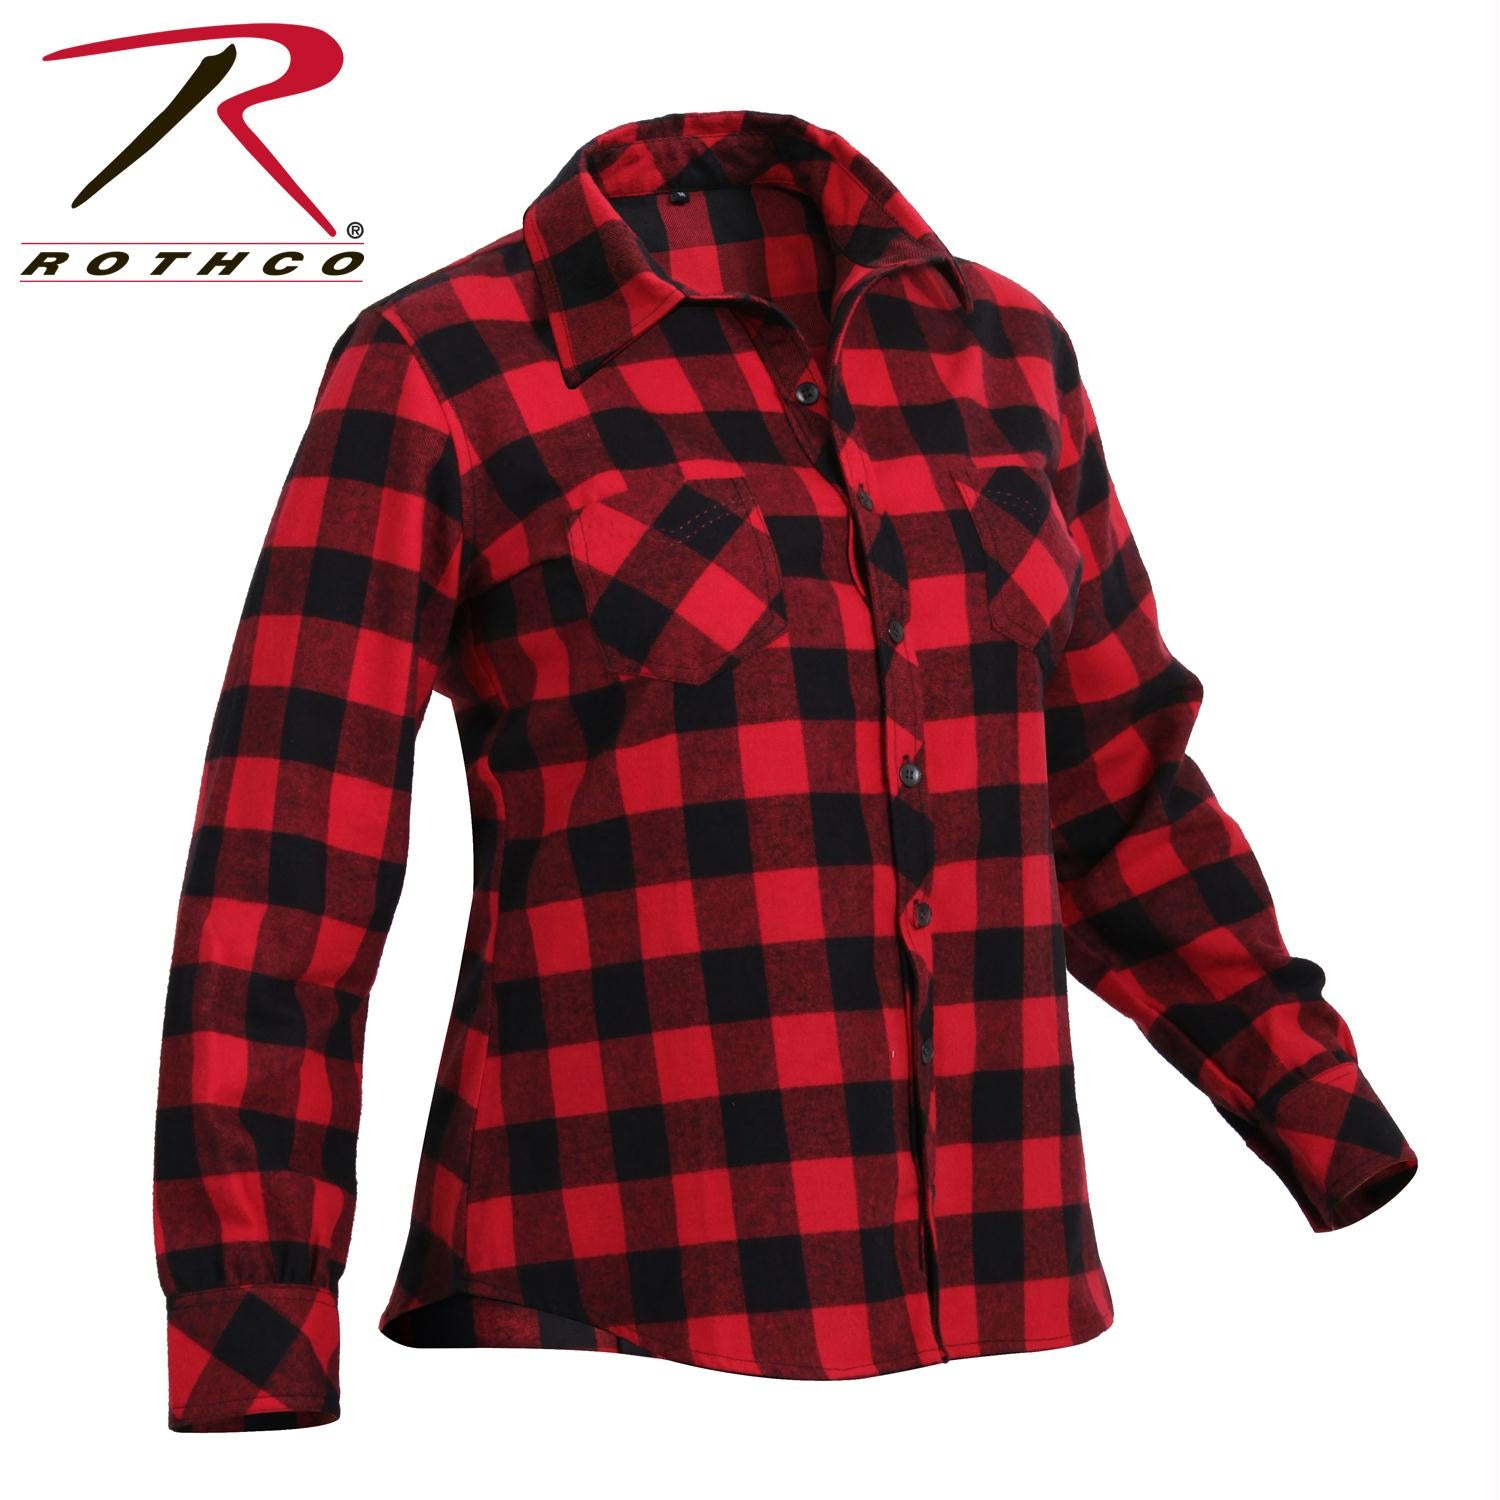 Rothco Womens Plaid Flannel Shirt - Red / Black / M